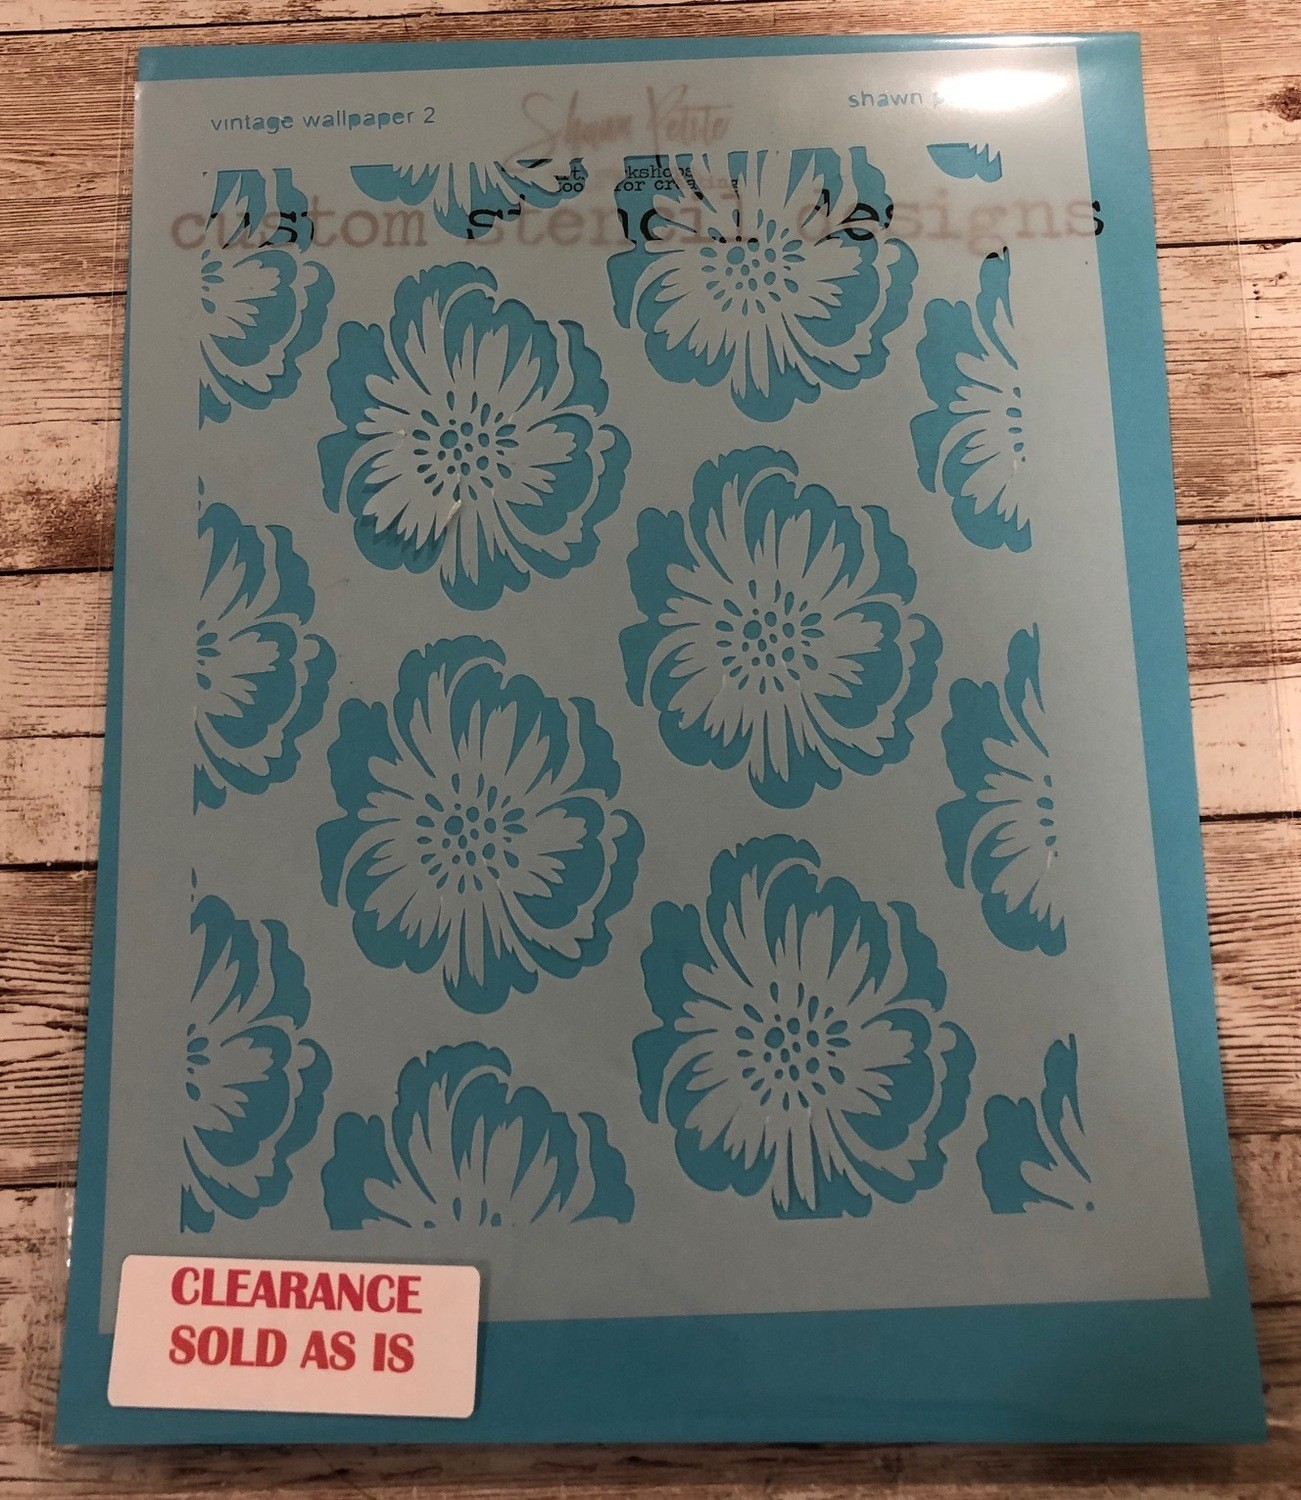 Vintage Wallpaper 2 Clearance